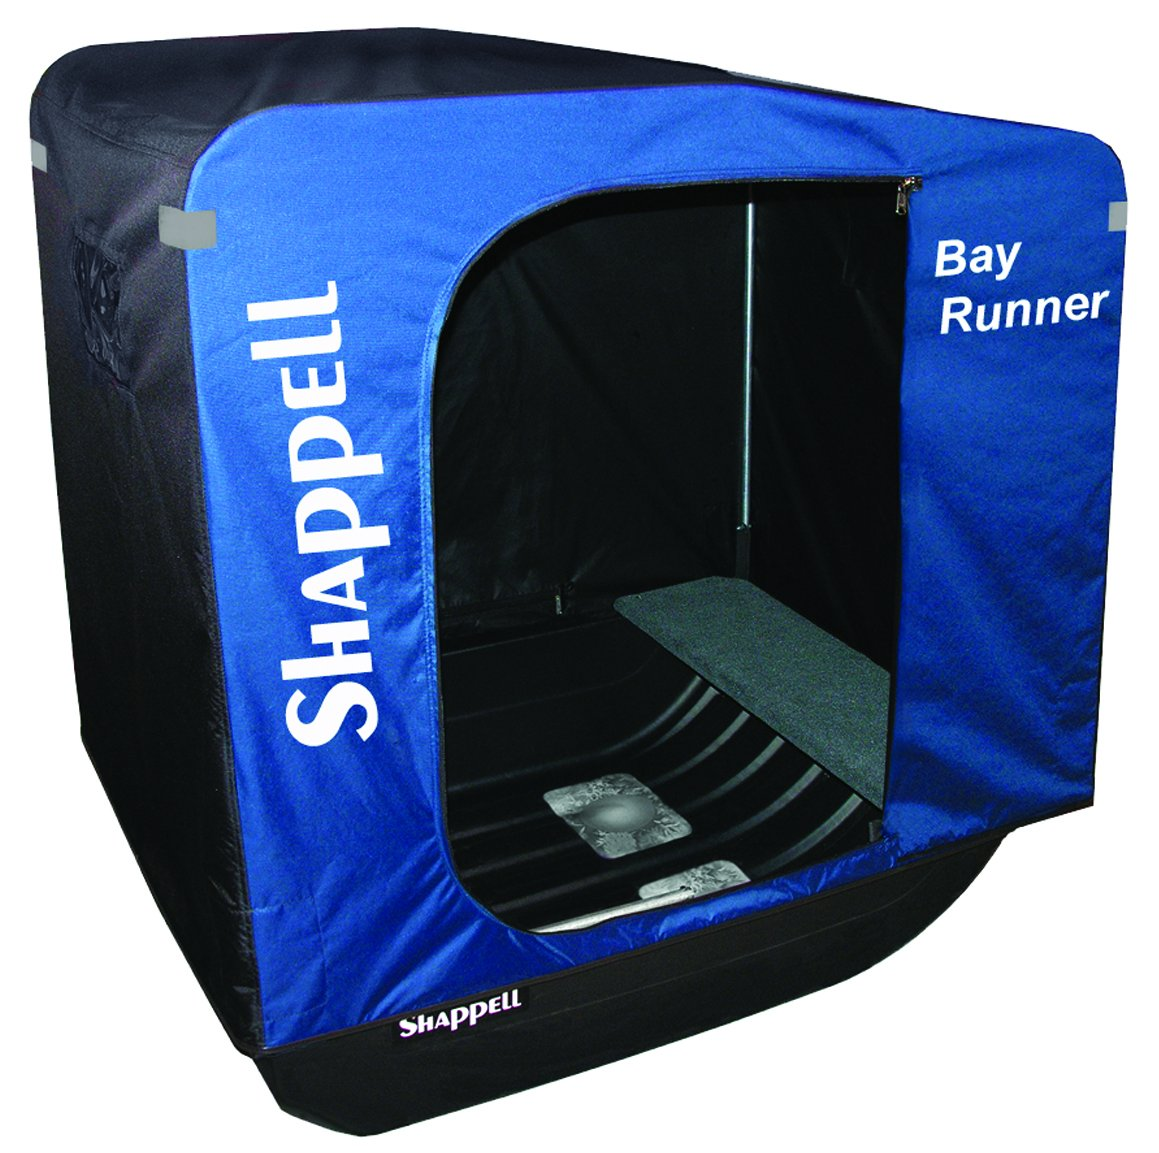 Shappell Bay Runner Ice Tent by Shappell